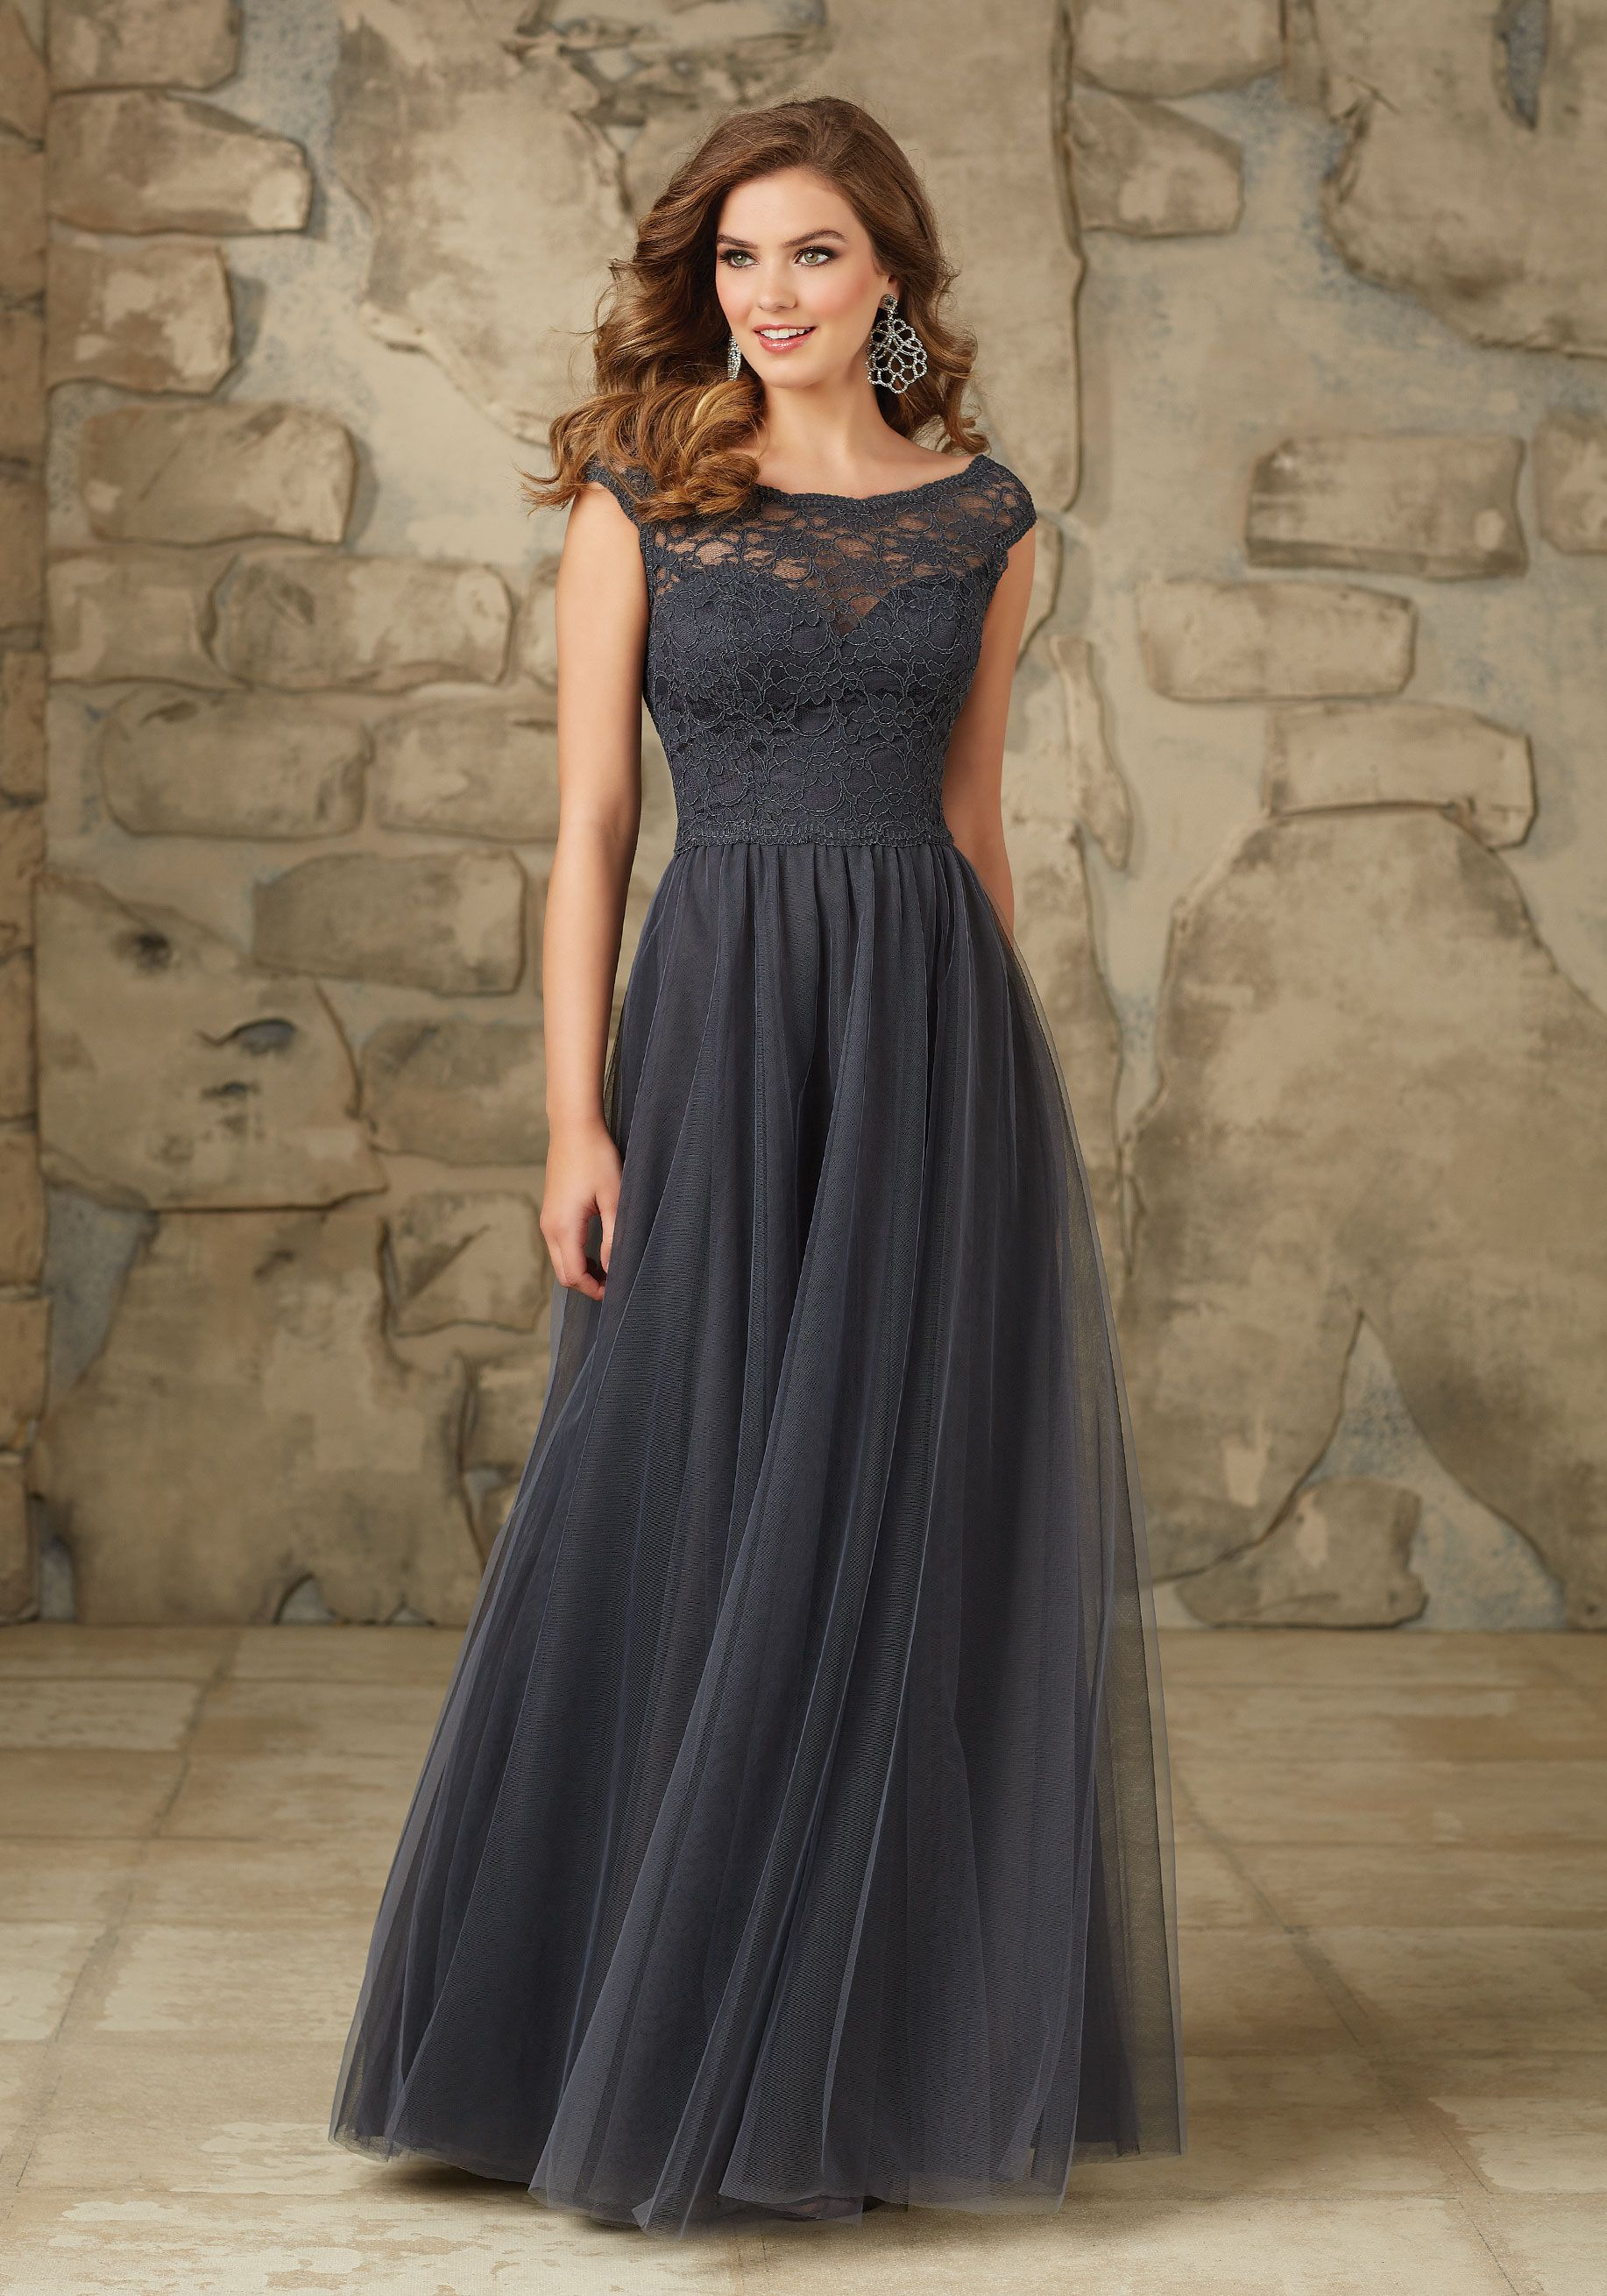 Long and elegant lace and tulle bridesmaid dress designed by long and elegant lace and tulle bridesmaid dress designed by madeline gardner zipper back ombrellifo Image collections